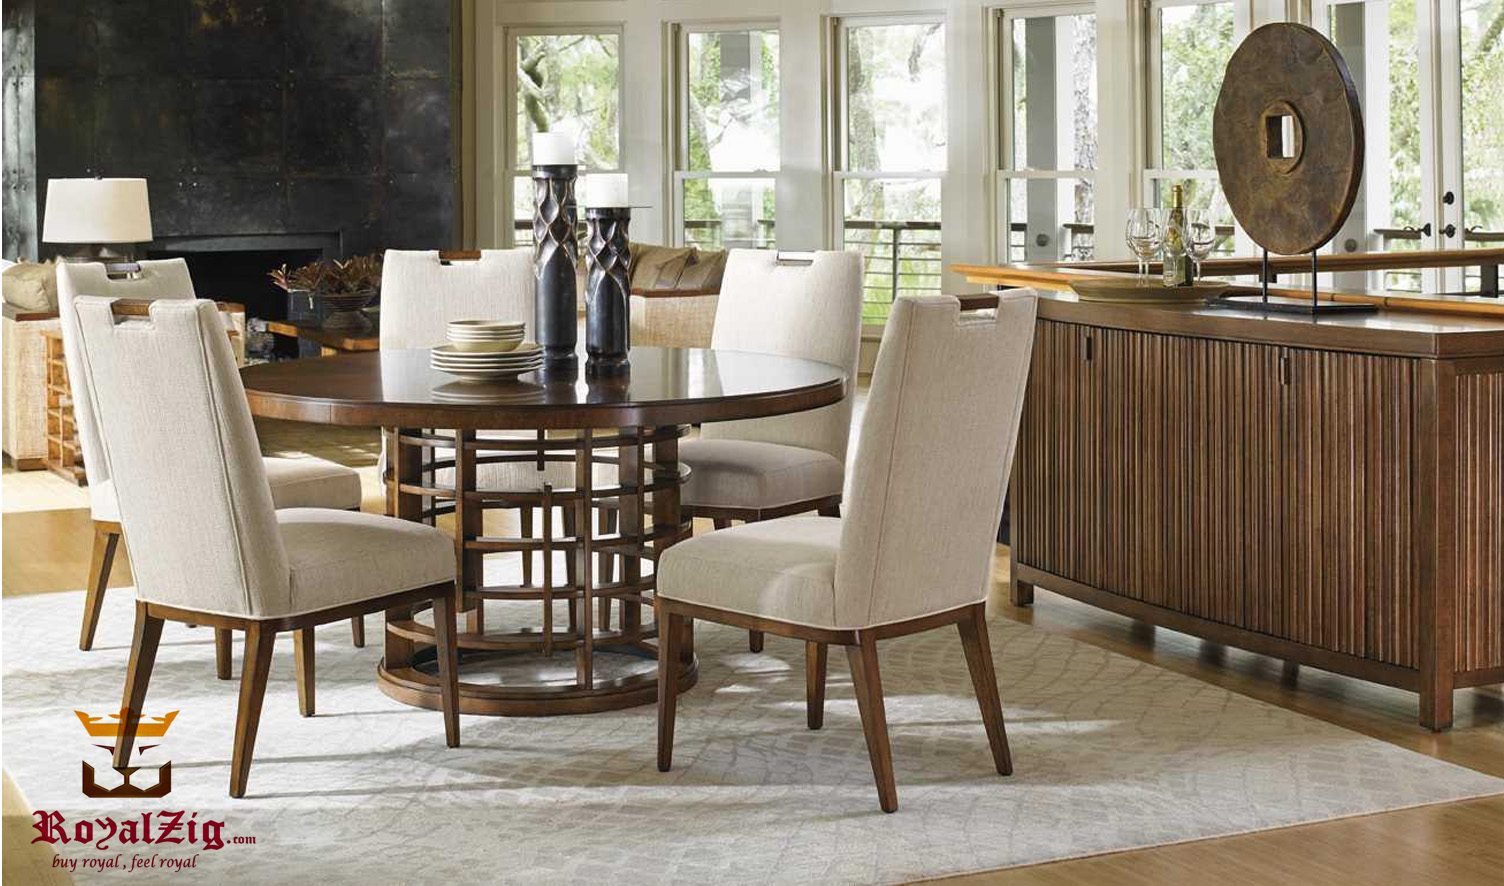 Cobham Modern Luxury Dining Table With Upholstered Chairs Online in India